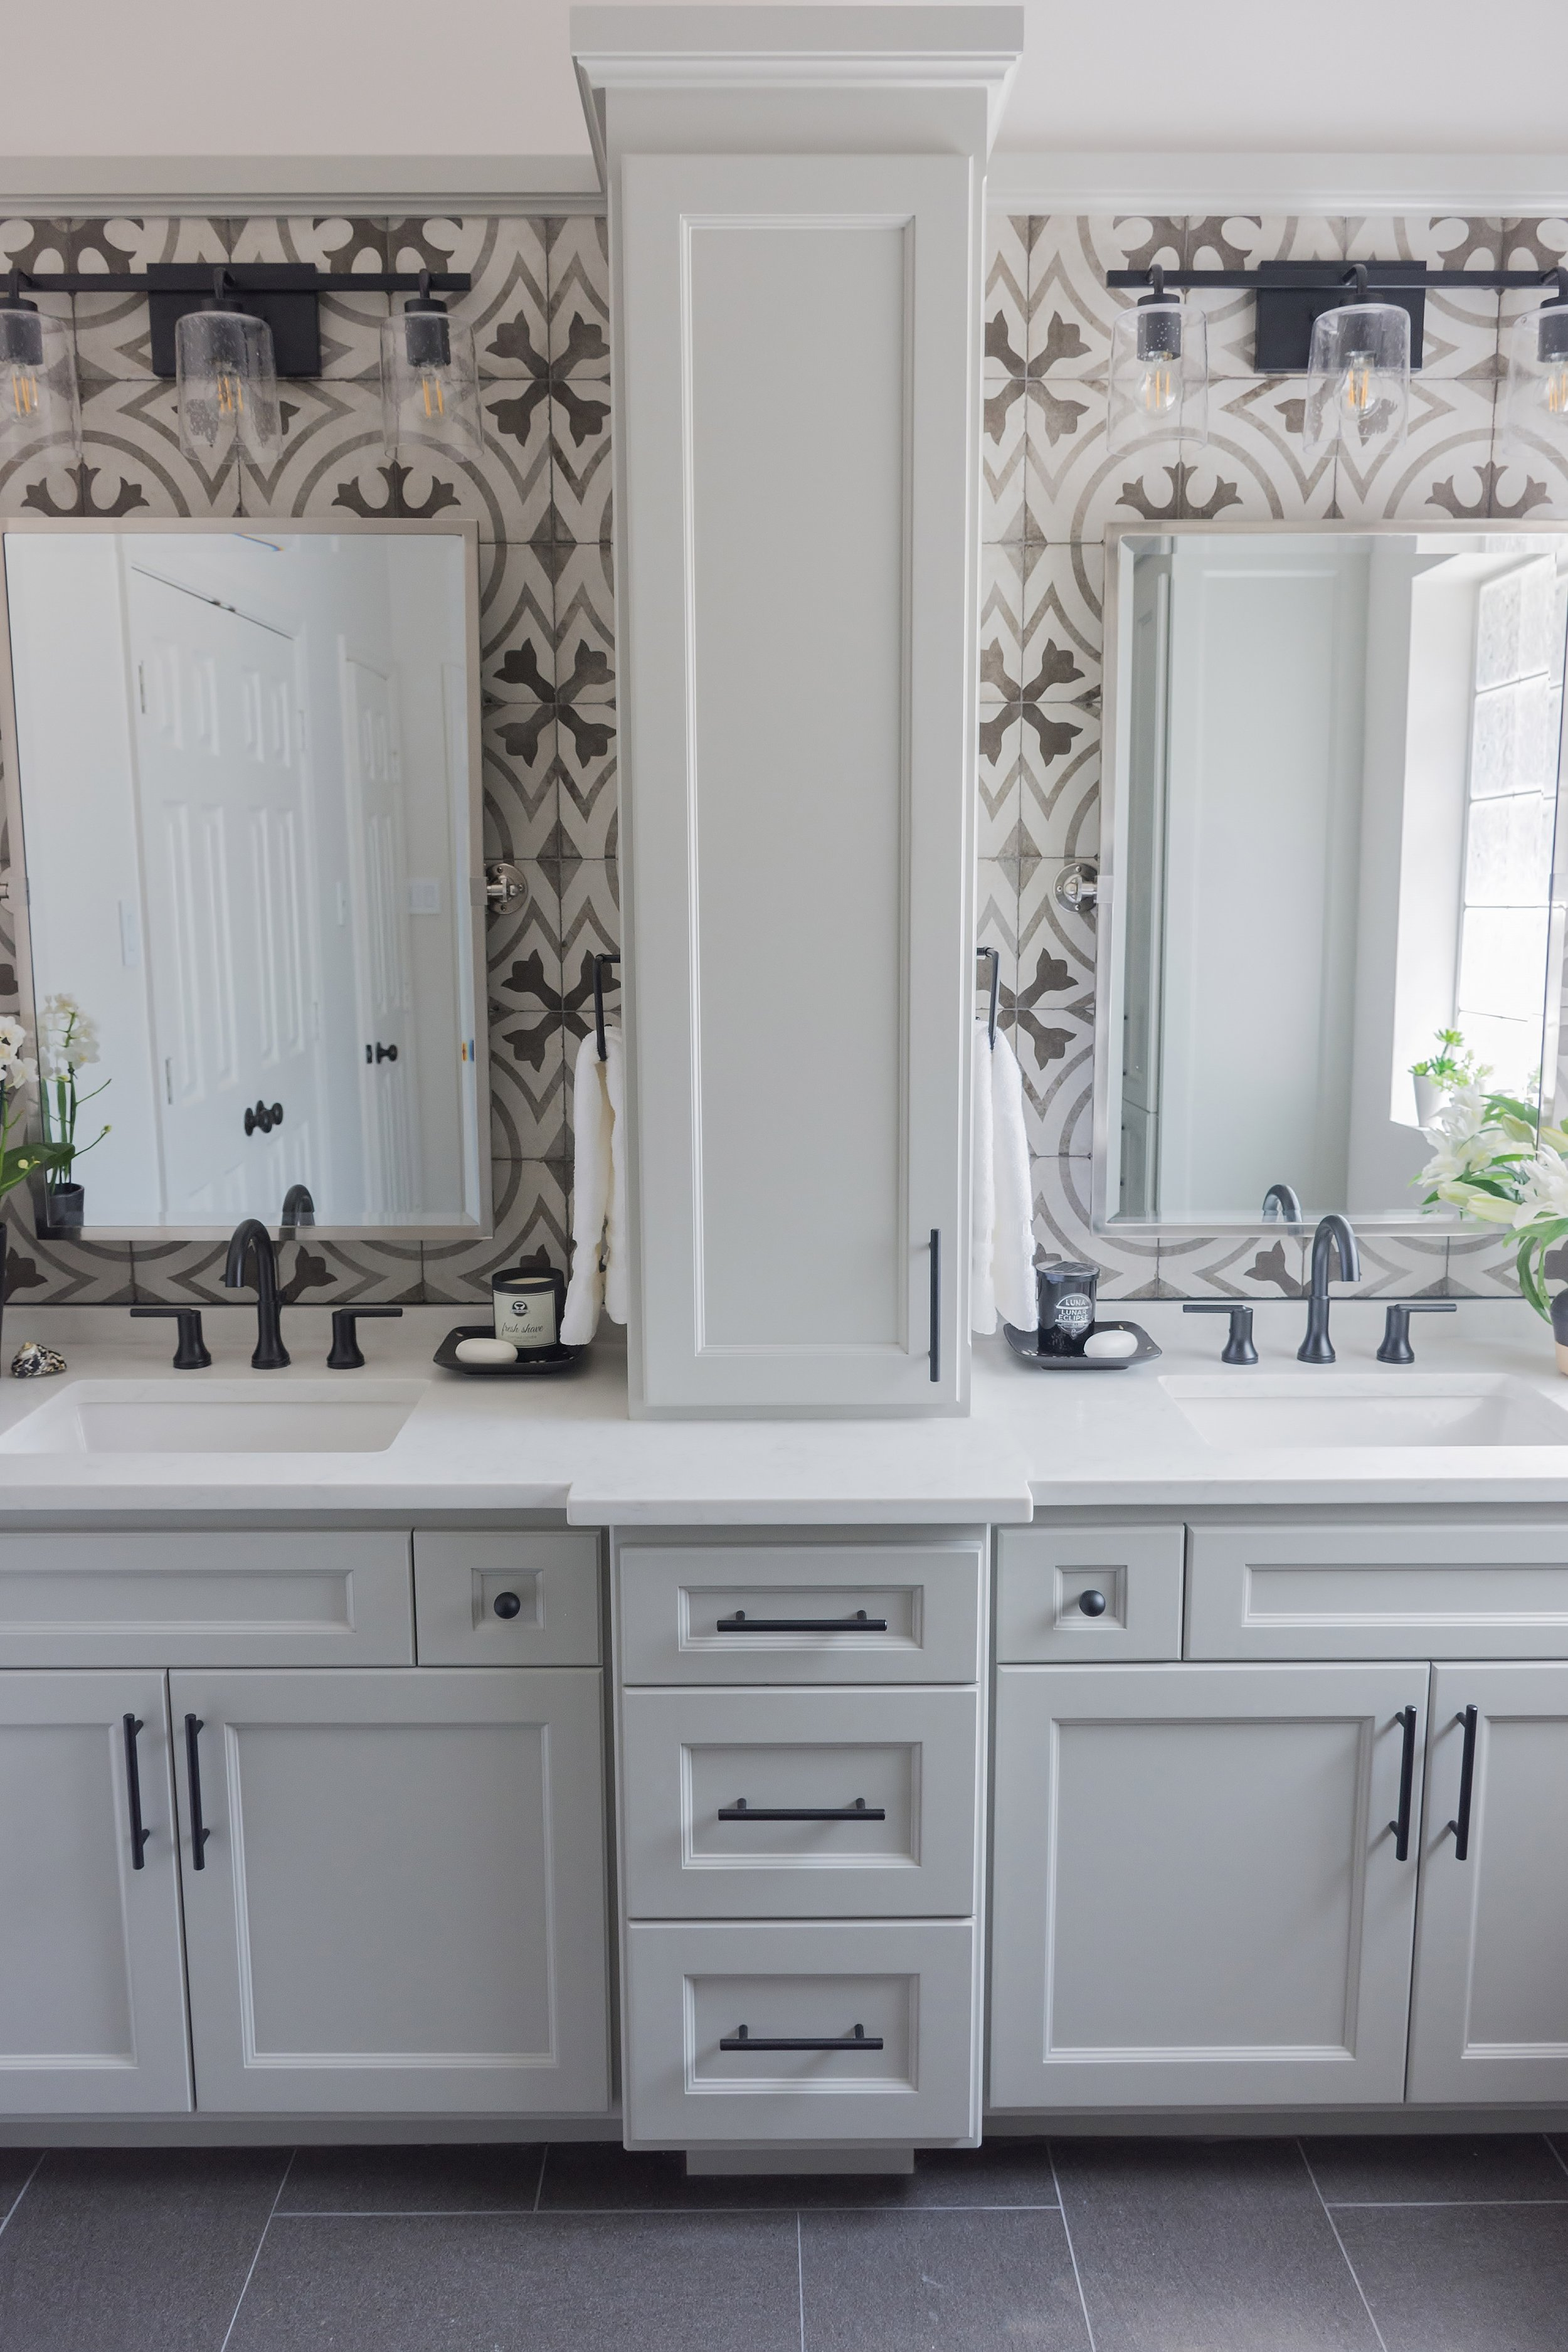 This single tall tower adds much needed storage and creates two more private vanity areas. Carla Aston, Designer | Charles Behrend, Photographer #bathroomvanity #bathroomcabinet #bathroomdesign